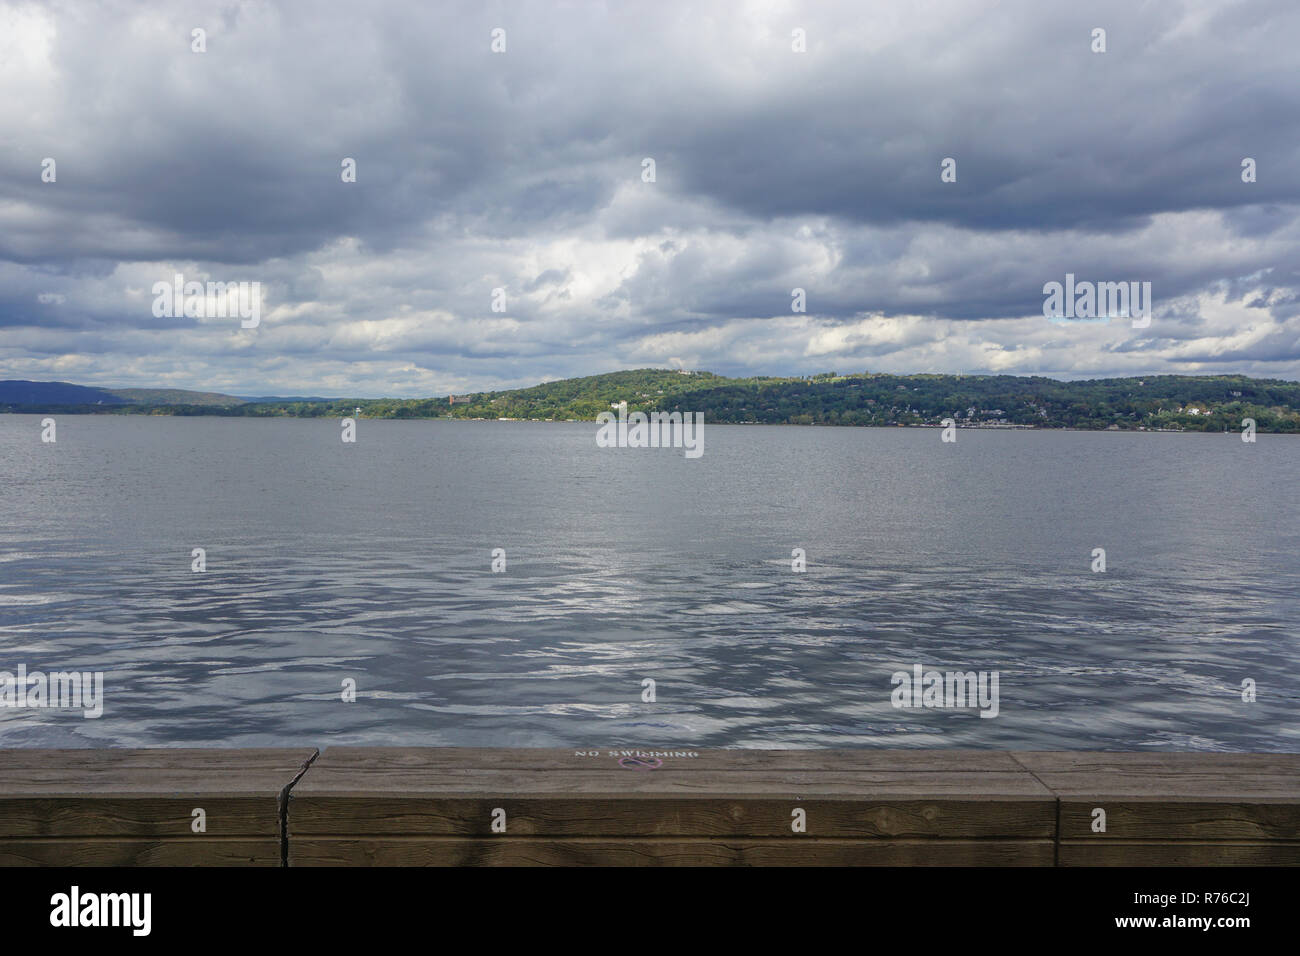 Croton-On-Hudson, New York, USA: A sign  in Croton Point Park prohibits swimming in  the Hudson River. - Stock Image